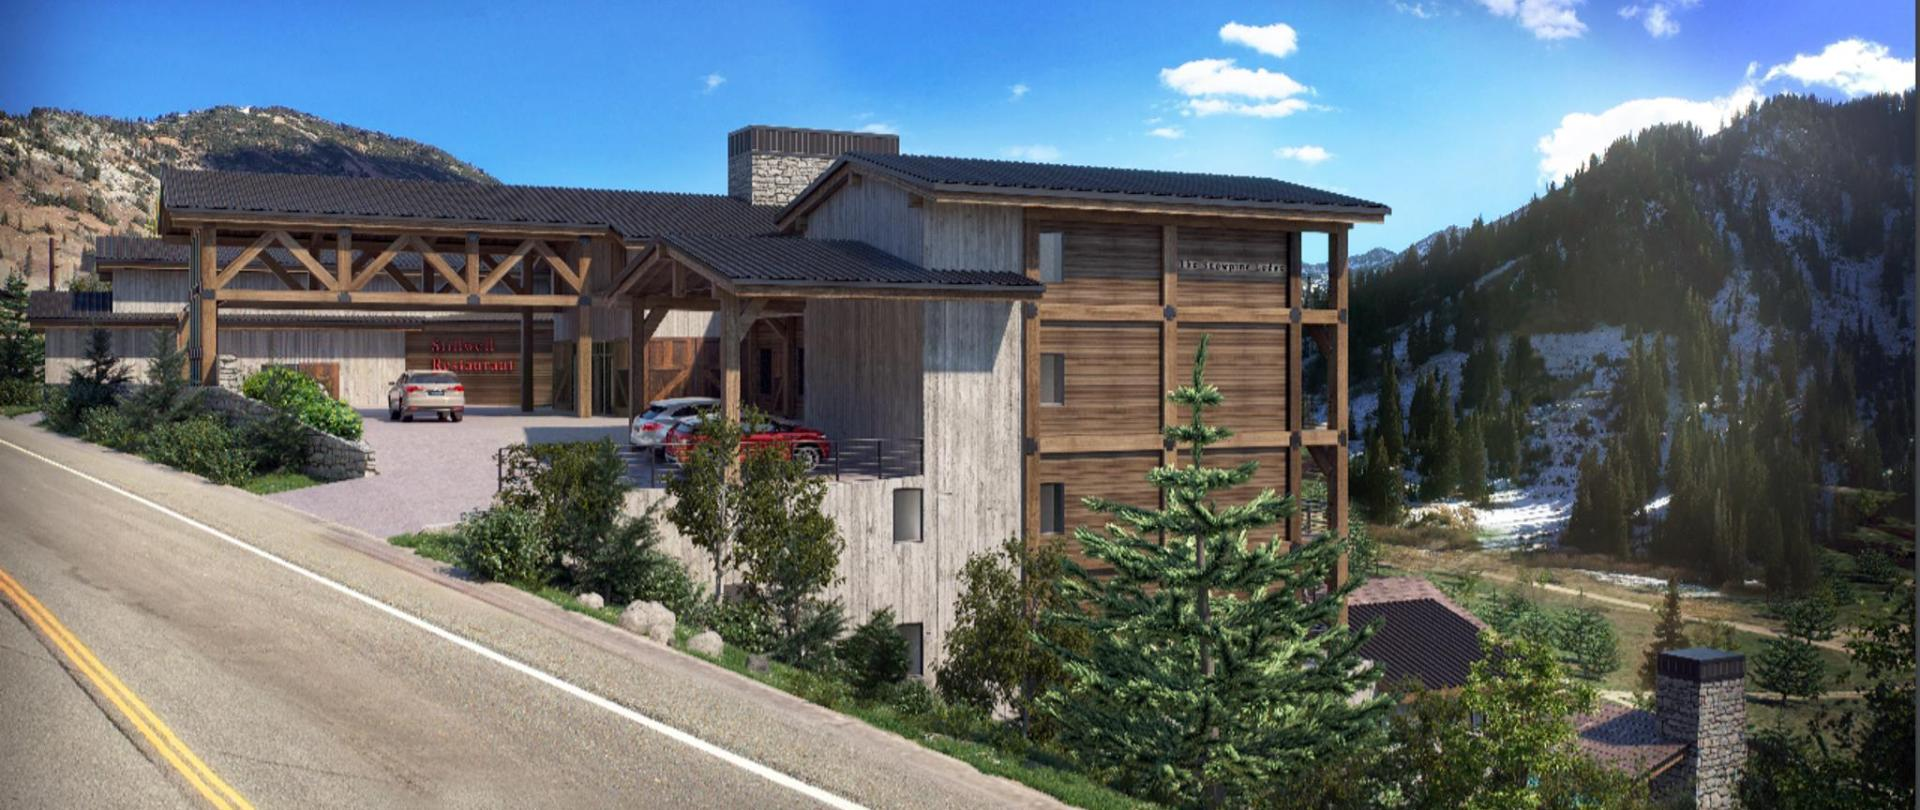 Alta Snowpine Lodge- Summer